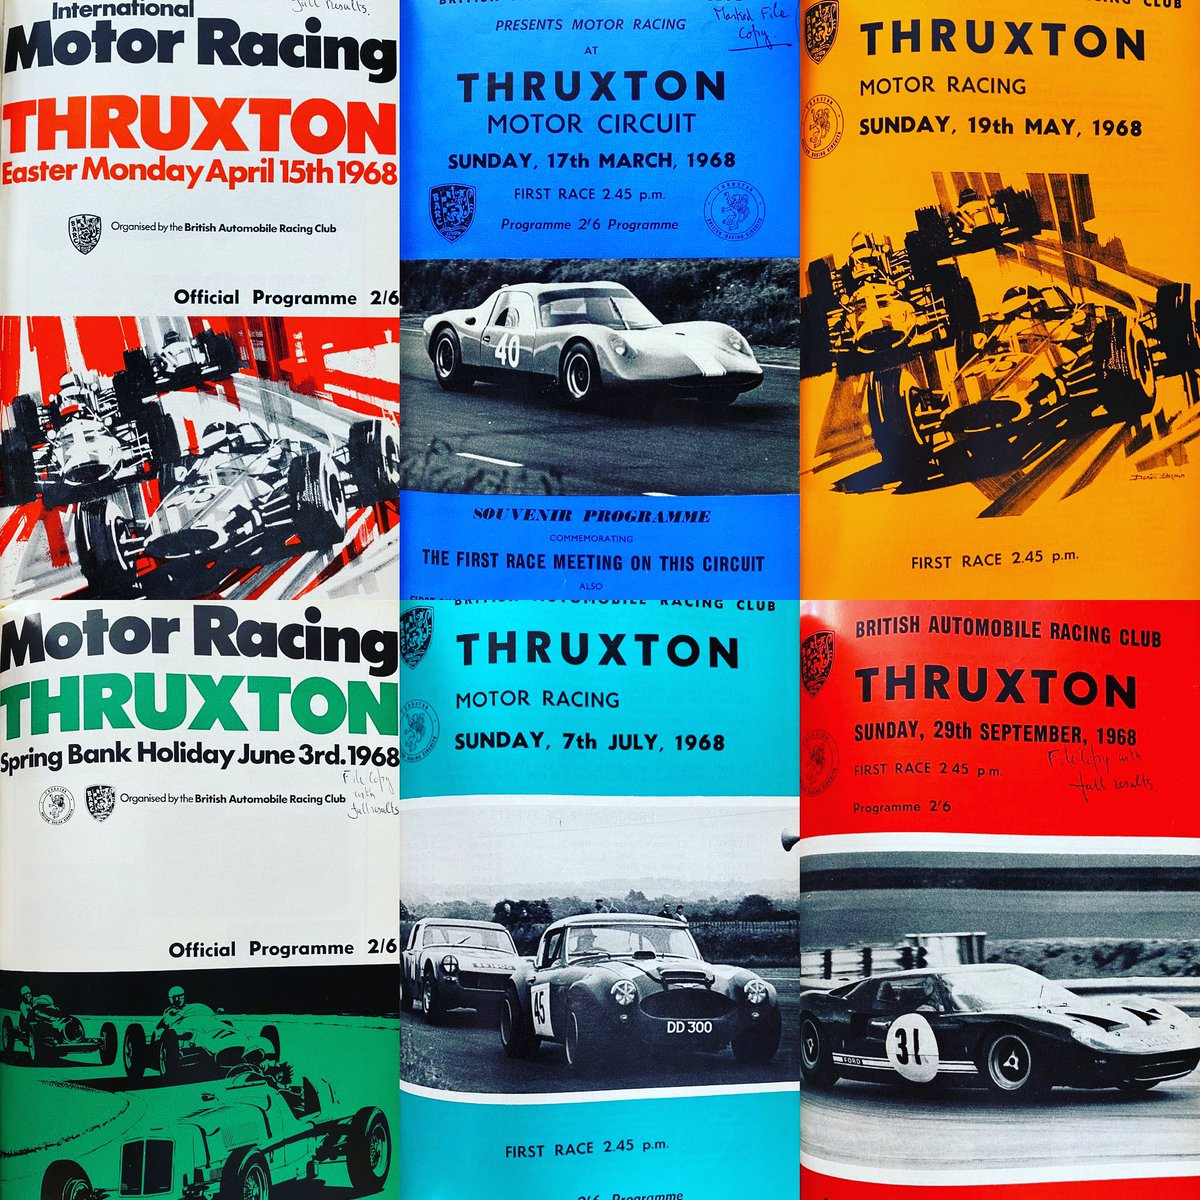 Check out these race programmes from Thruxton in 1968 (our inaugural year).  The Easter Monday cover features incredible artwork from Dexter Brown.  #Thruxton #Racing #racingcars      #Motorsport #Hampshire #artwork  #dexterbrown https://t.co/gOGCksJMyb